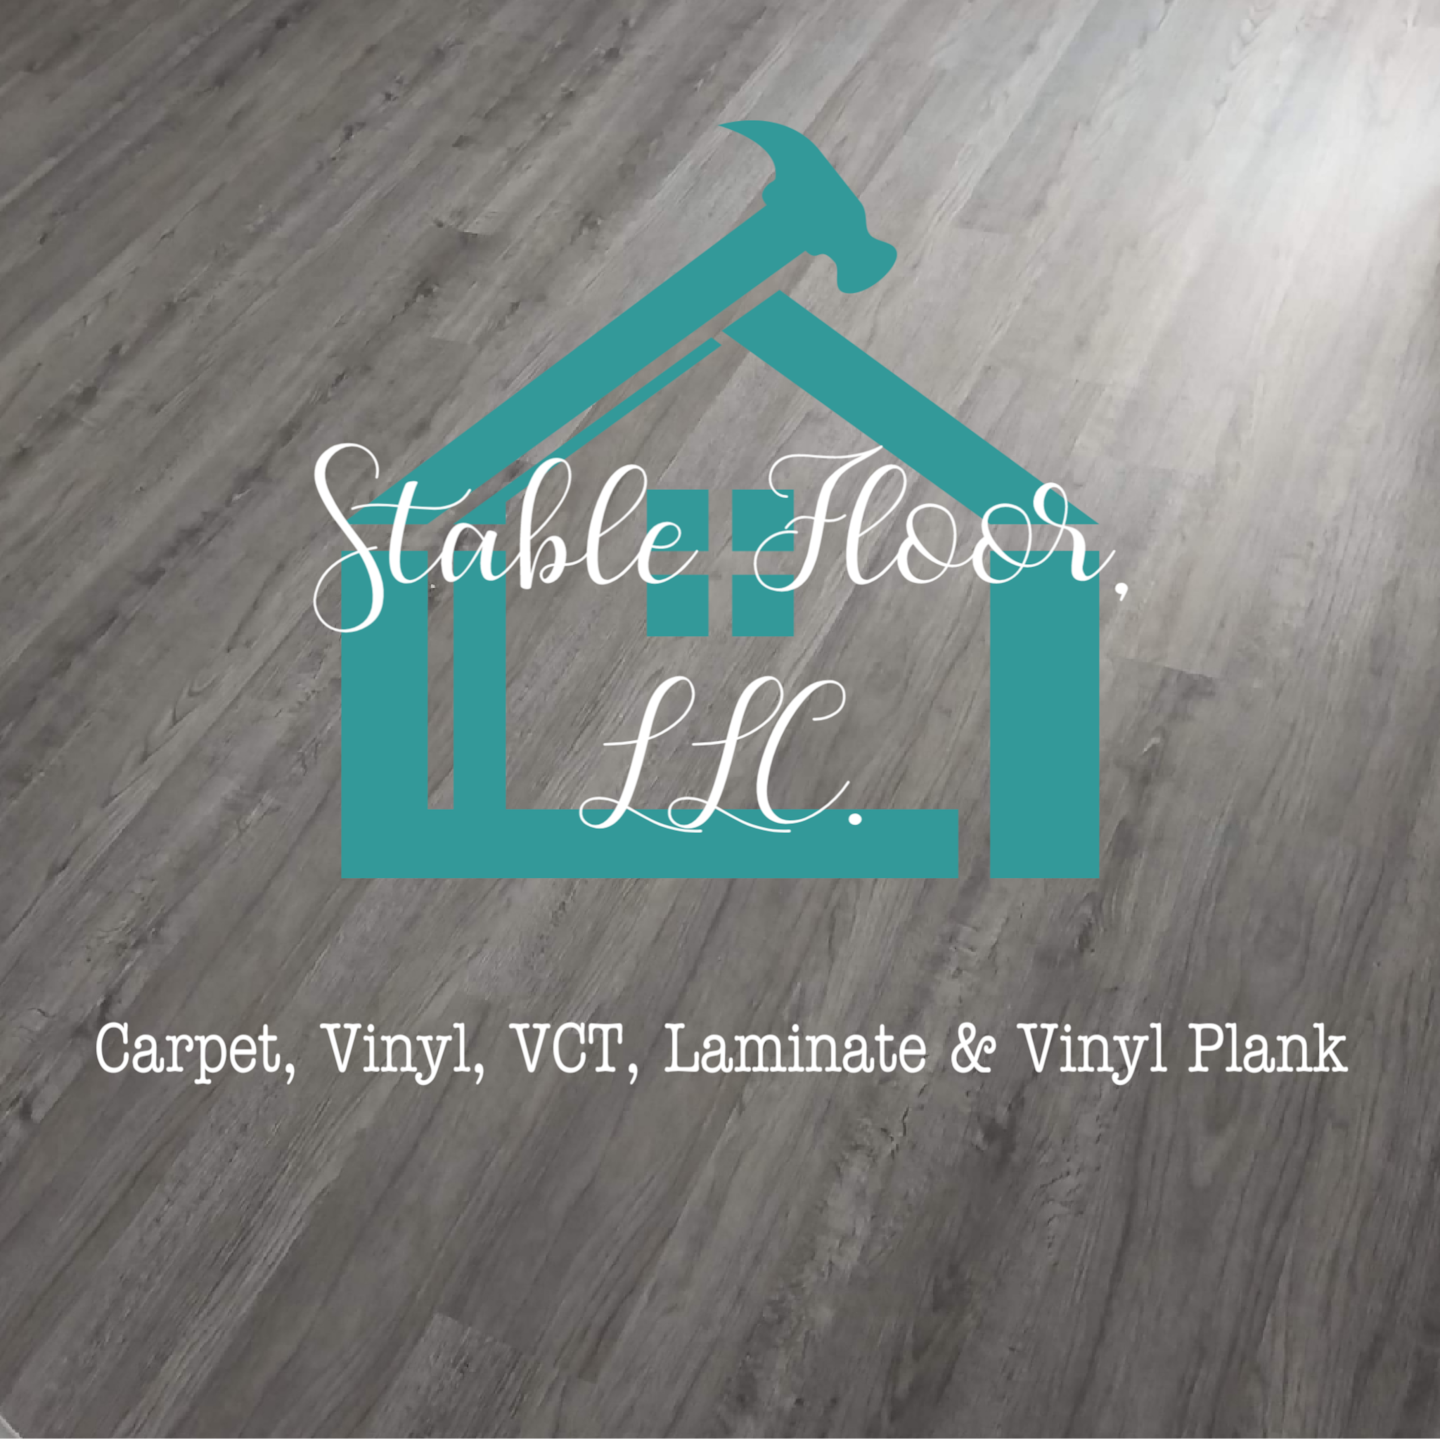 Stable Floor LLC